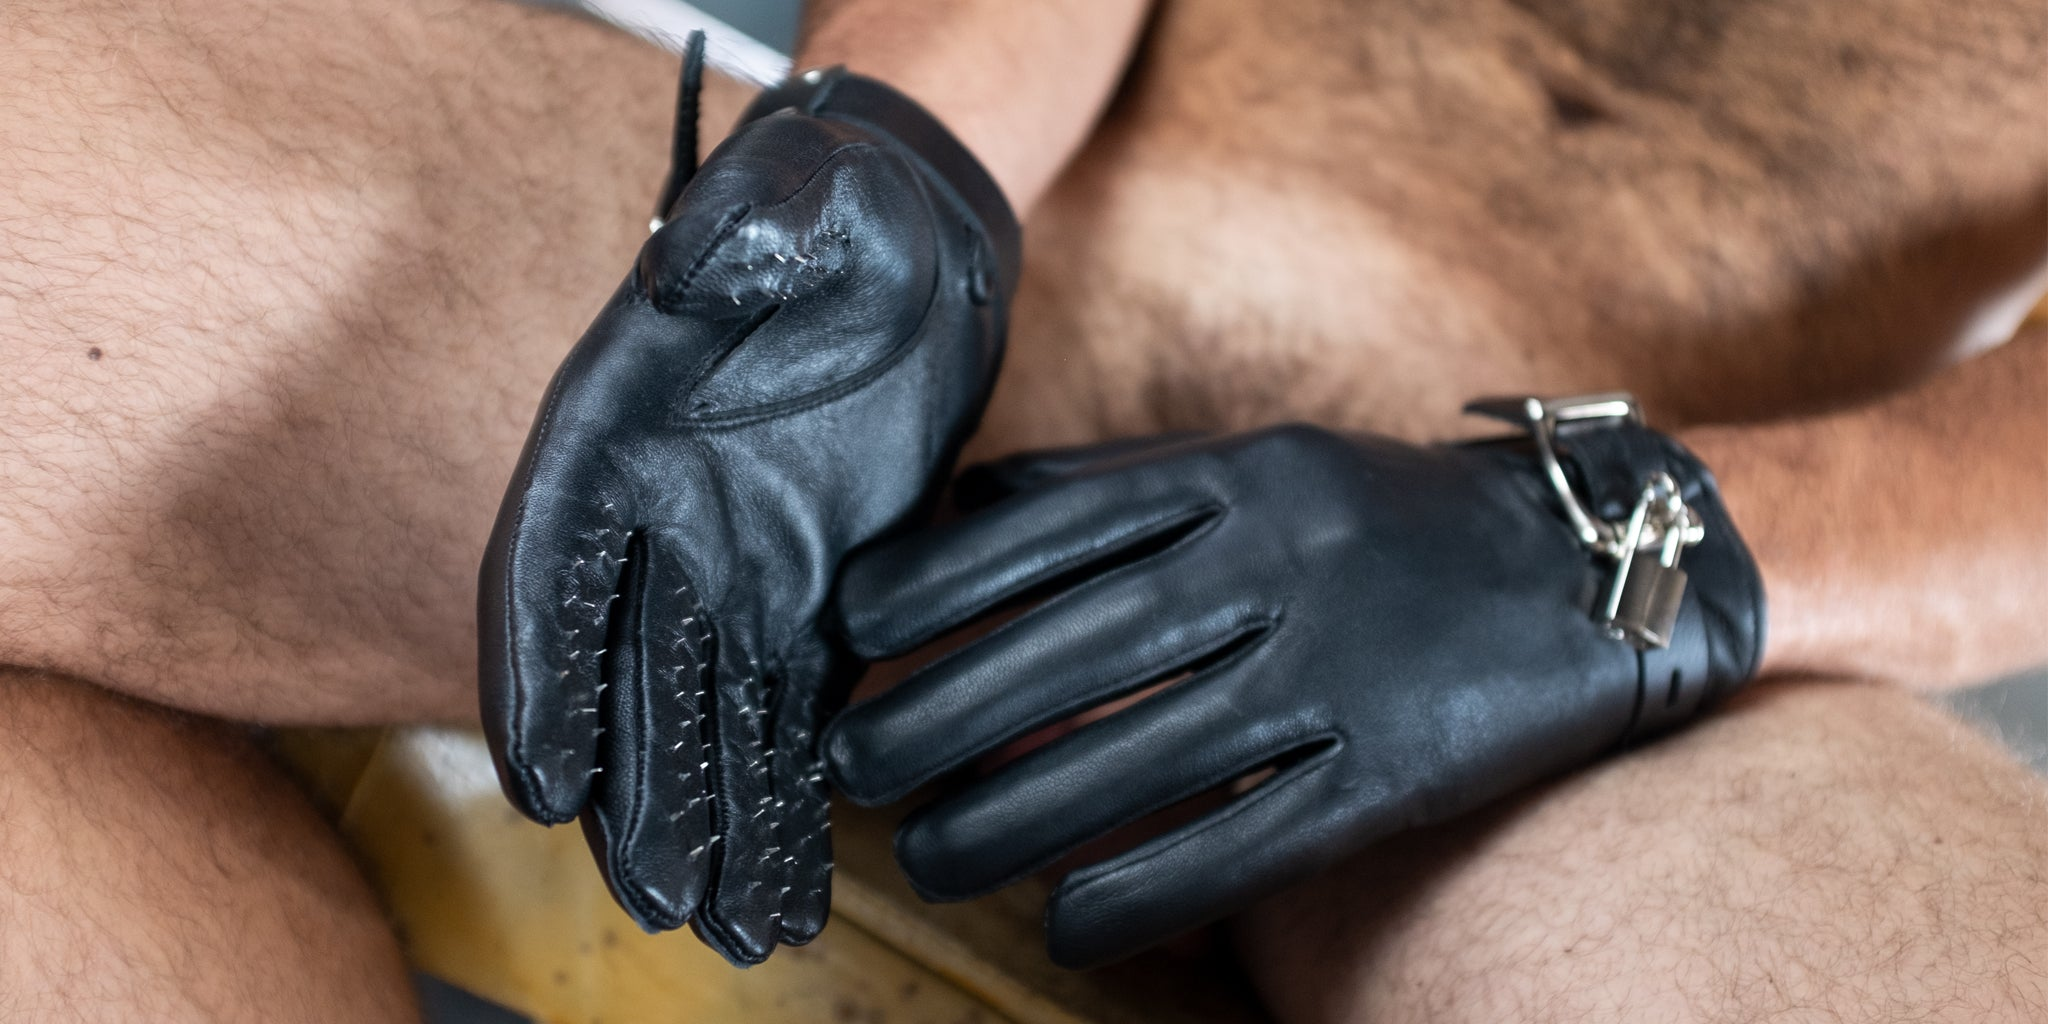 Male Stockroom Autumn's Bottoms Sale: Up to 30% Off select Male Chastity, Bondage Gear, Impact & Implements